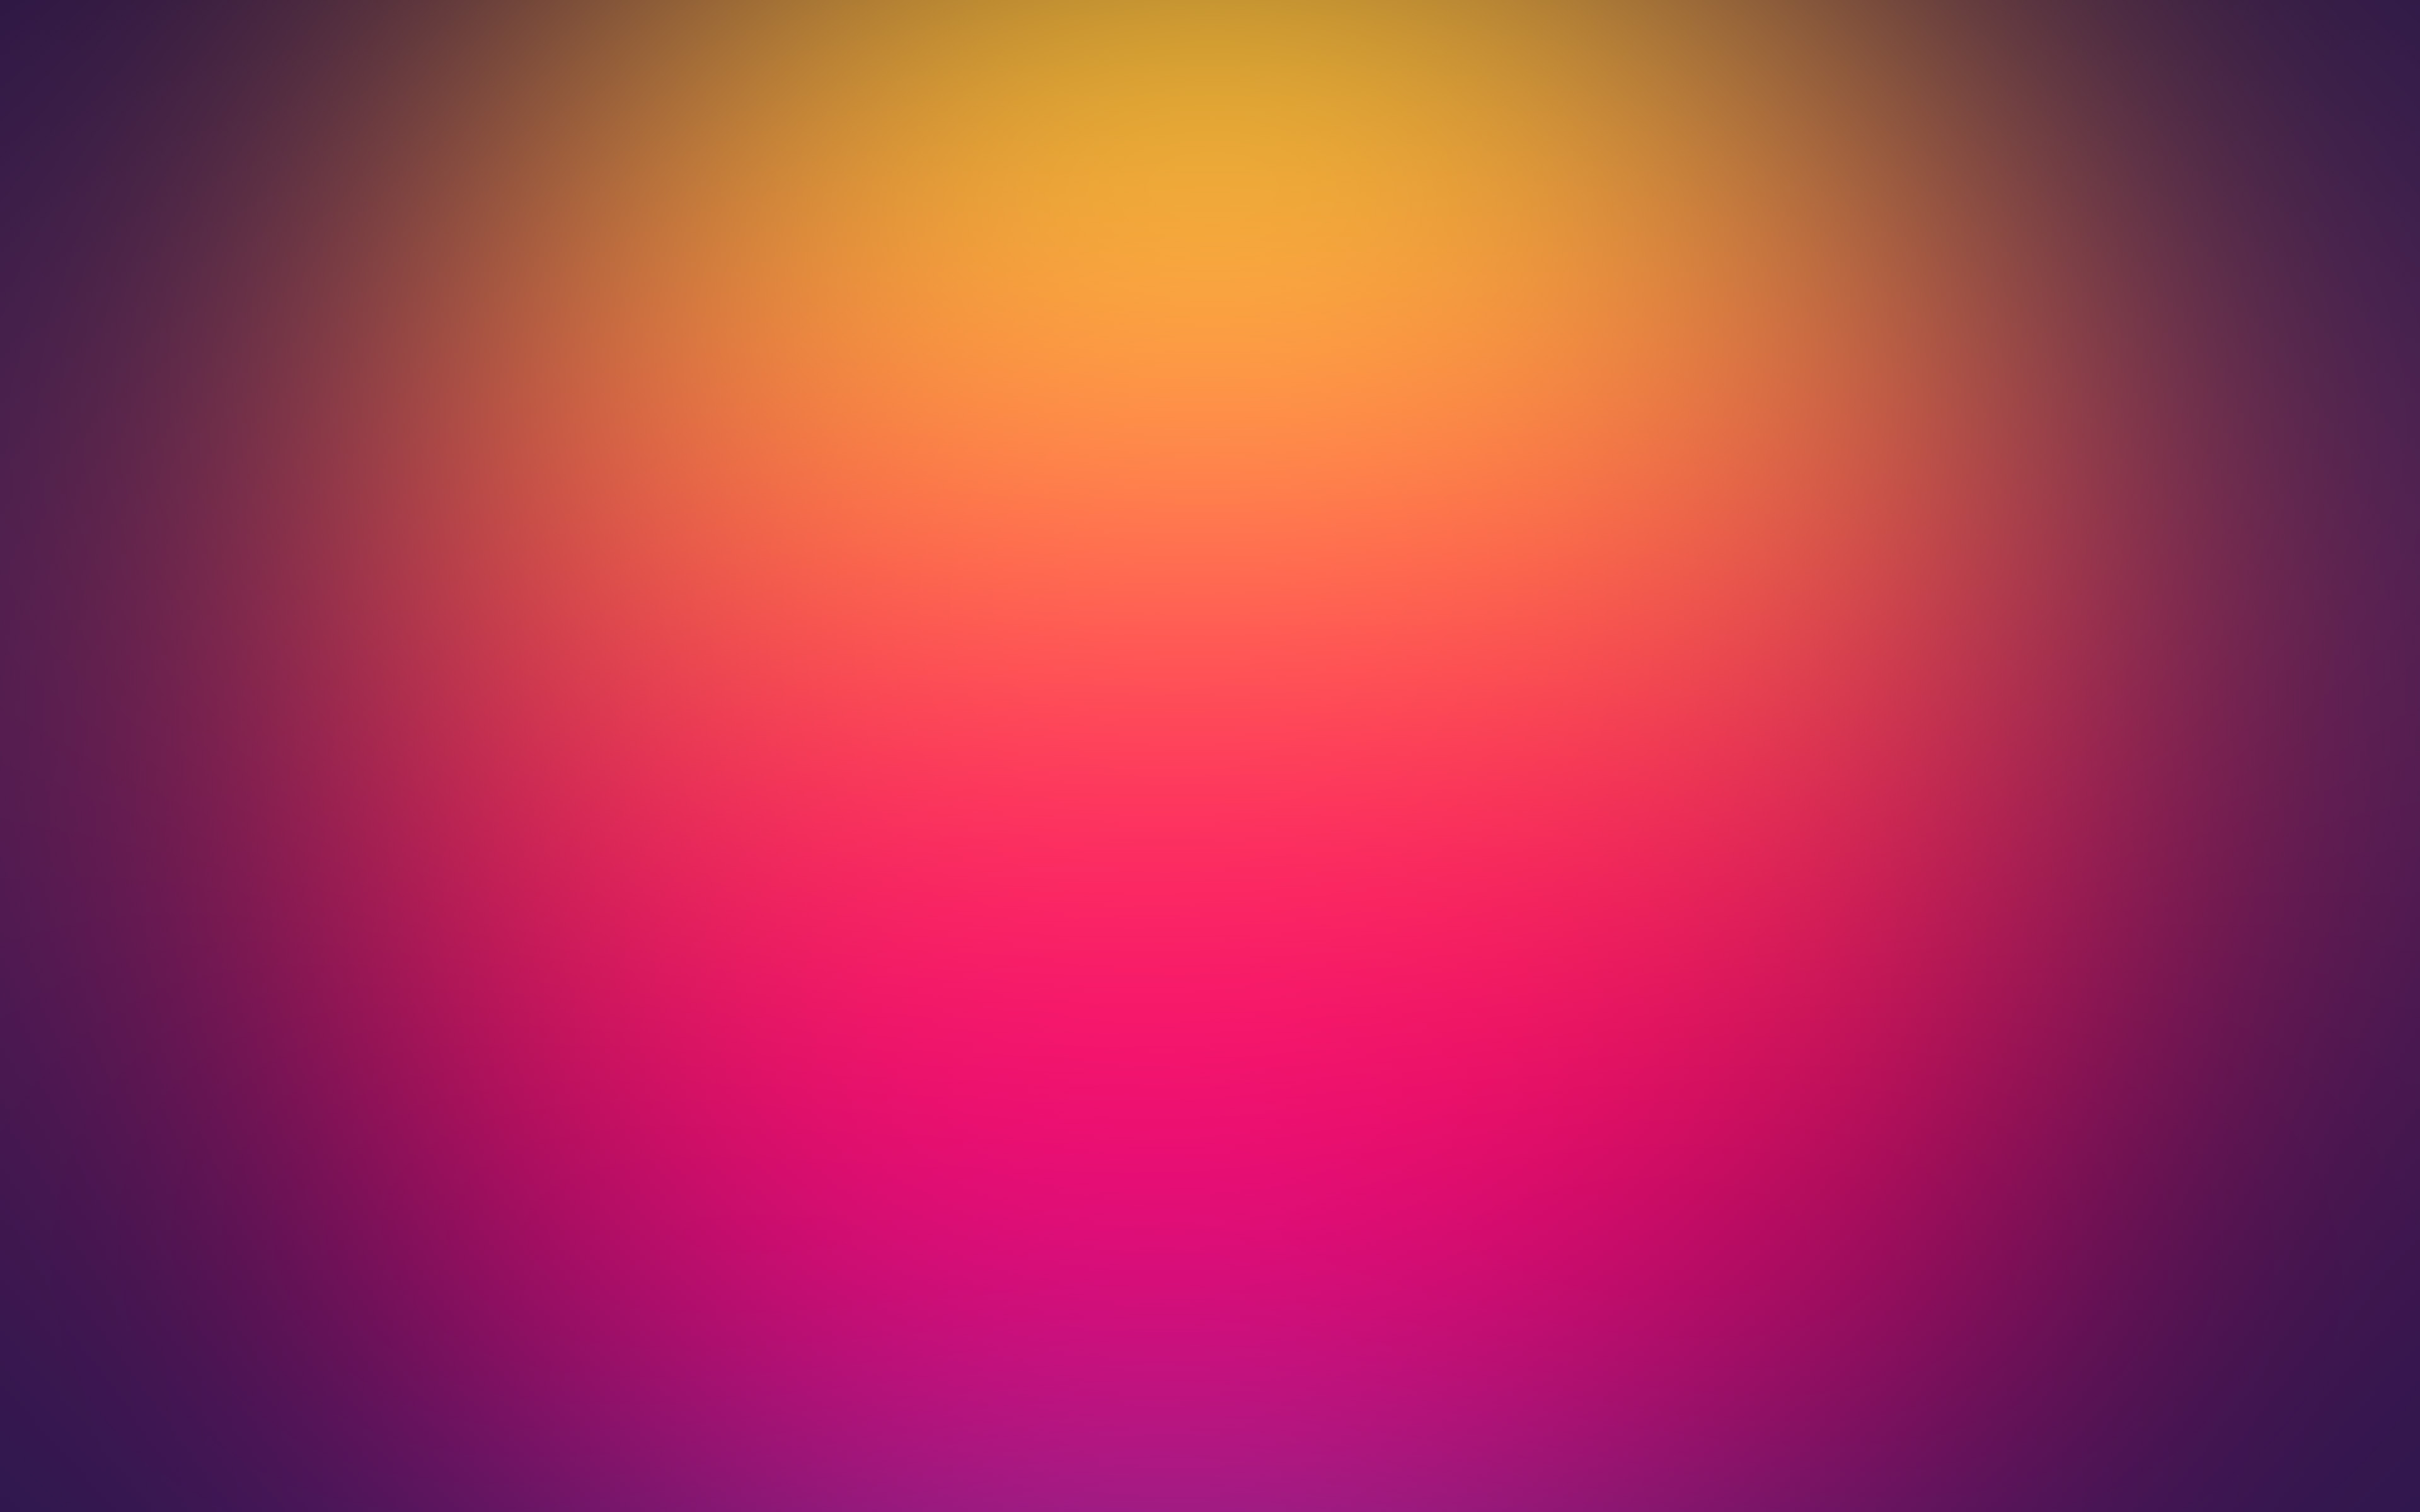 sj44-fm84-blur-purple-sun-gradation-blur-wallpaper